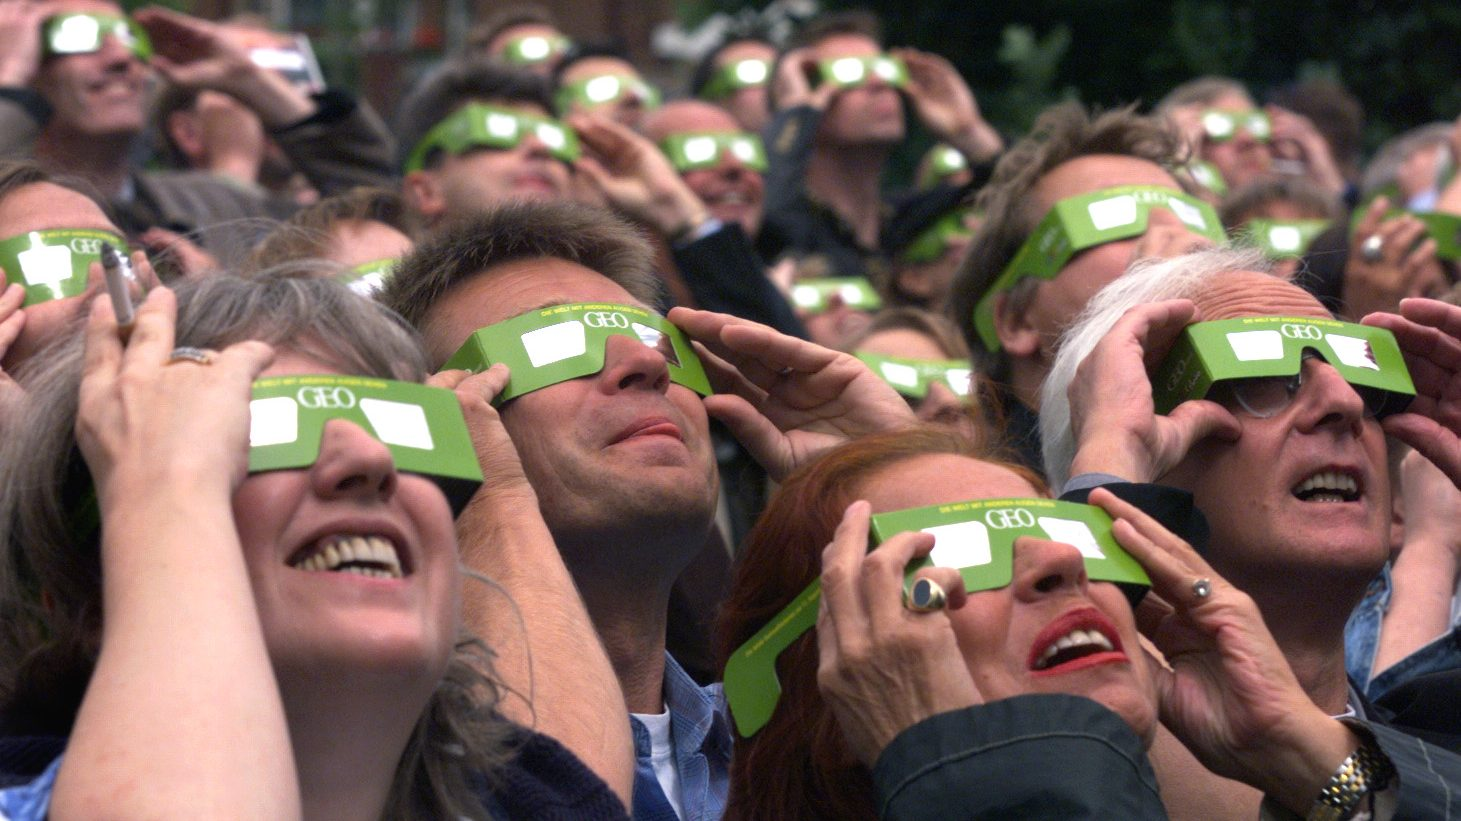 Solar eclipse viewers protect their eyes as they watch the moon shade the sun in Hamburg on Wednesday, August 11, 1999. This is the final total solar eclipse of the millennium.